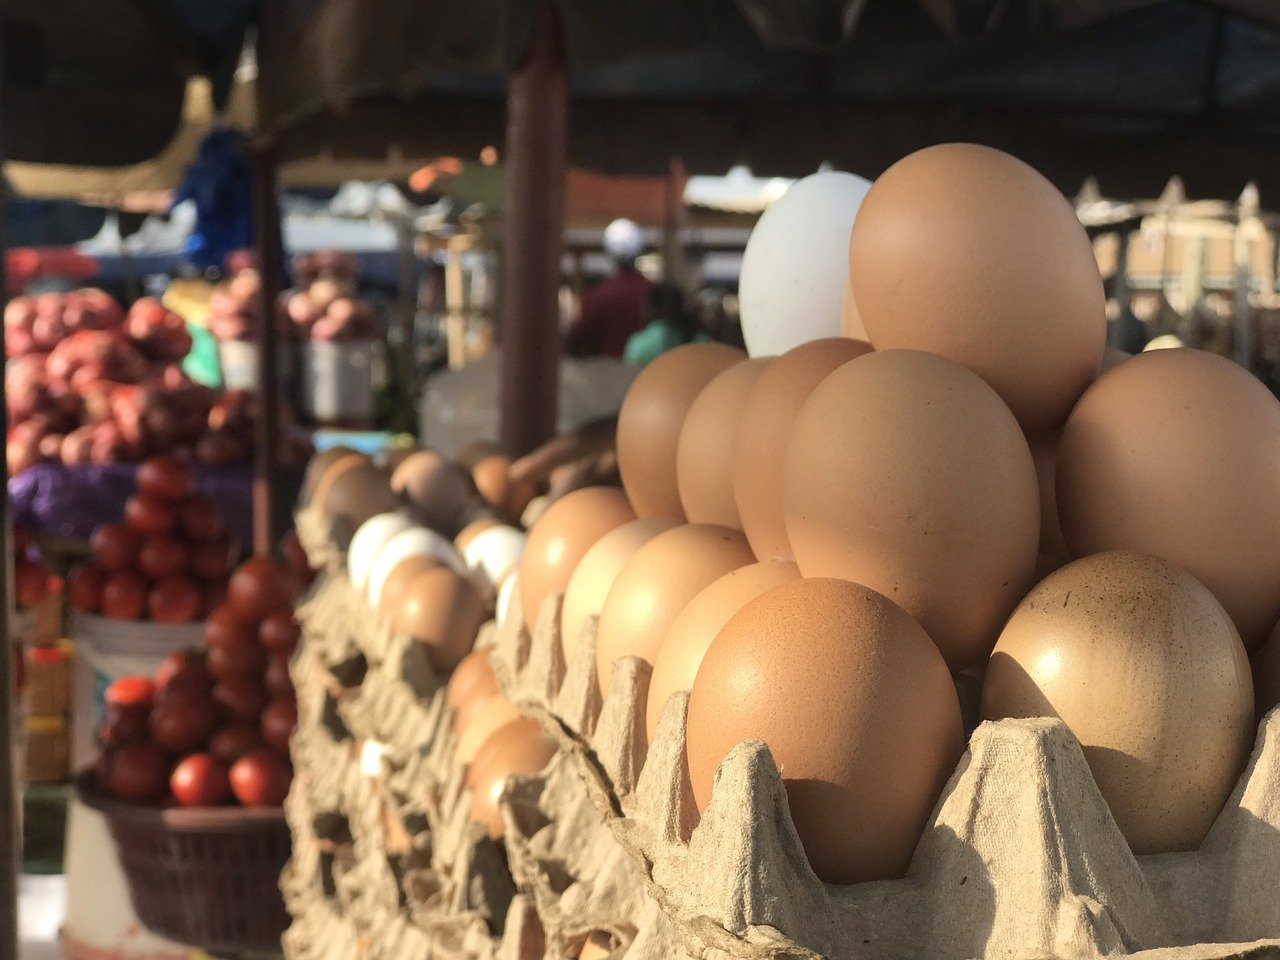 Guide to Egg Distribution Business with low Capital